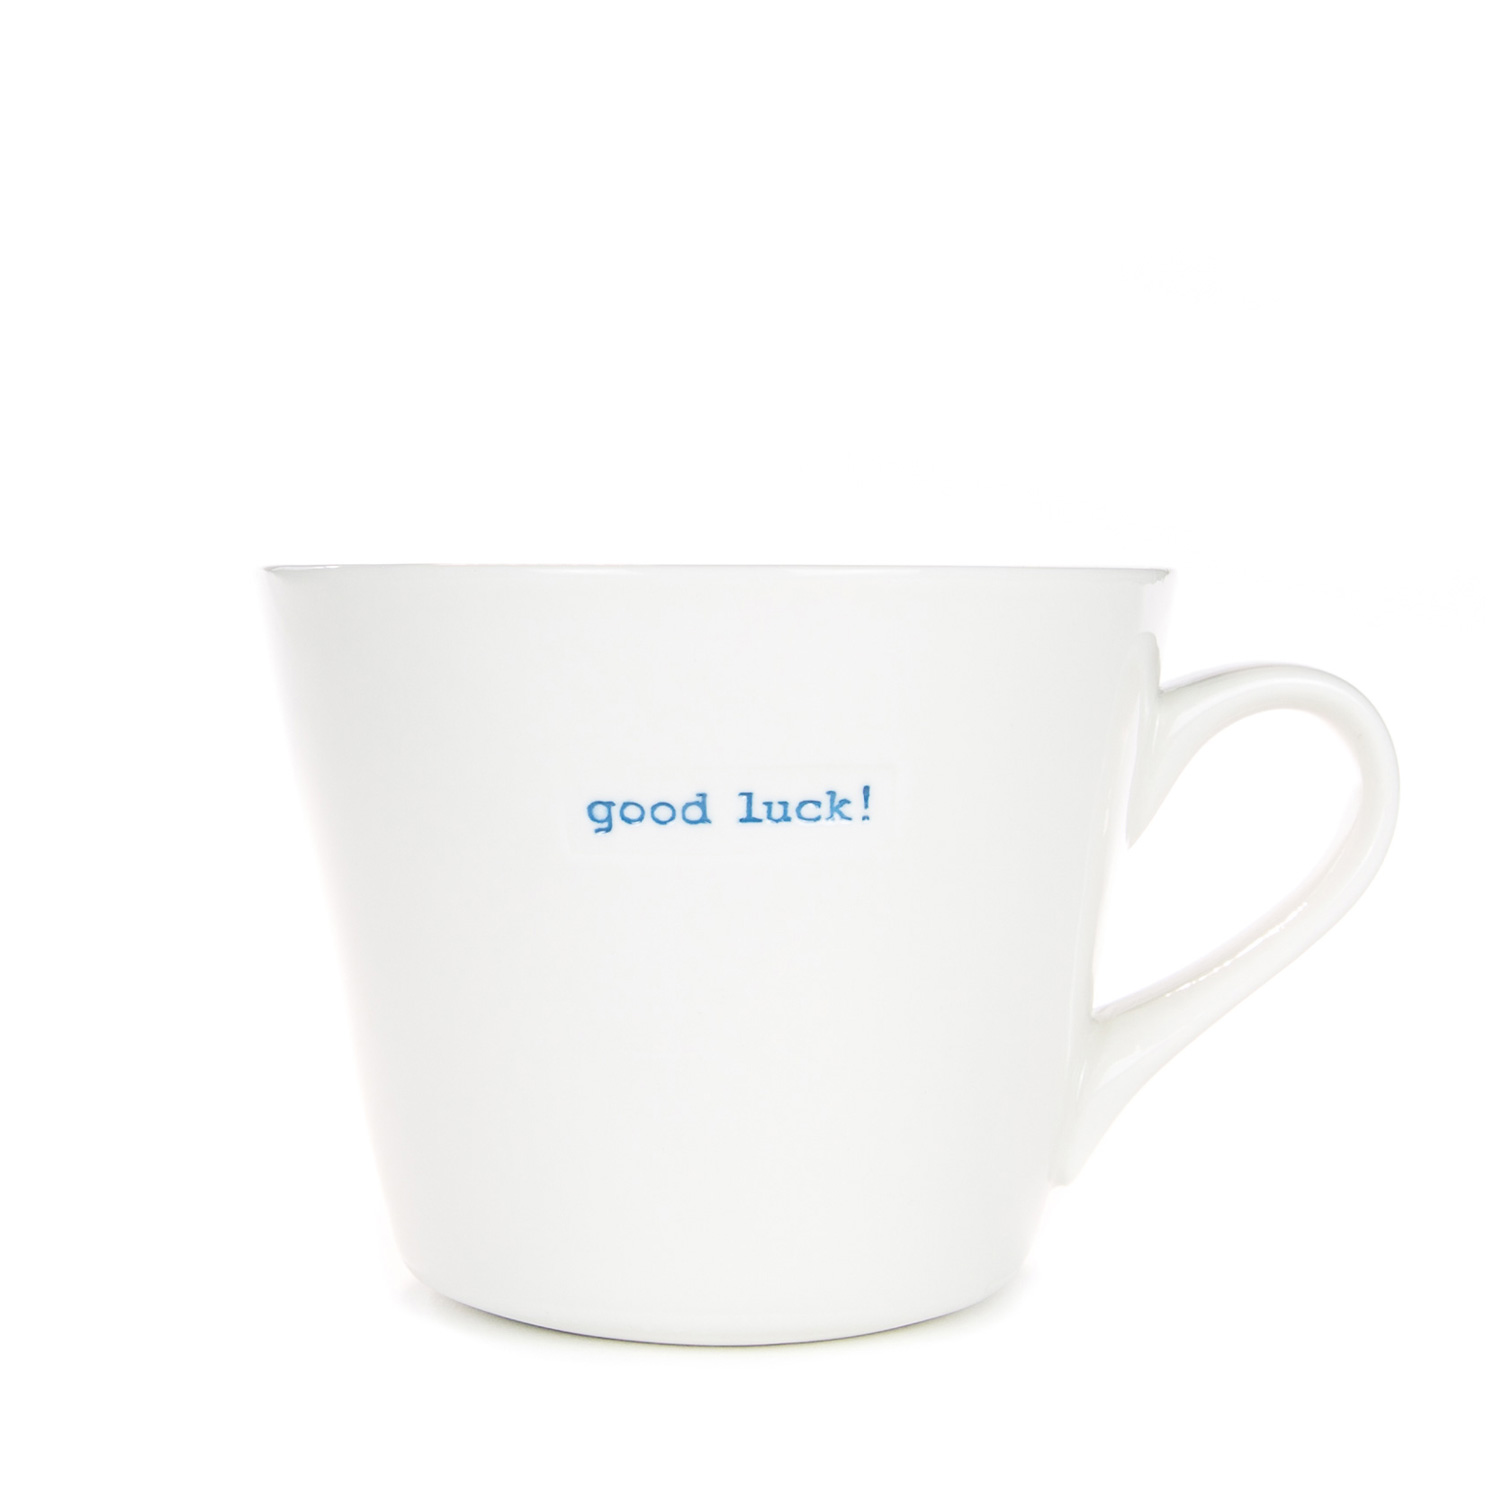 Standard Bucket Mug 350ml - good luck!